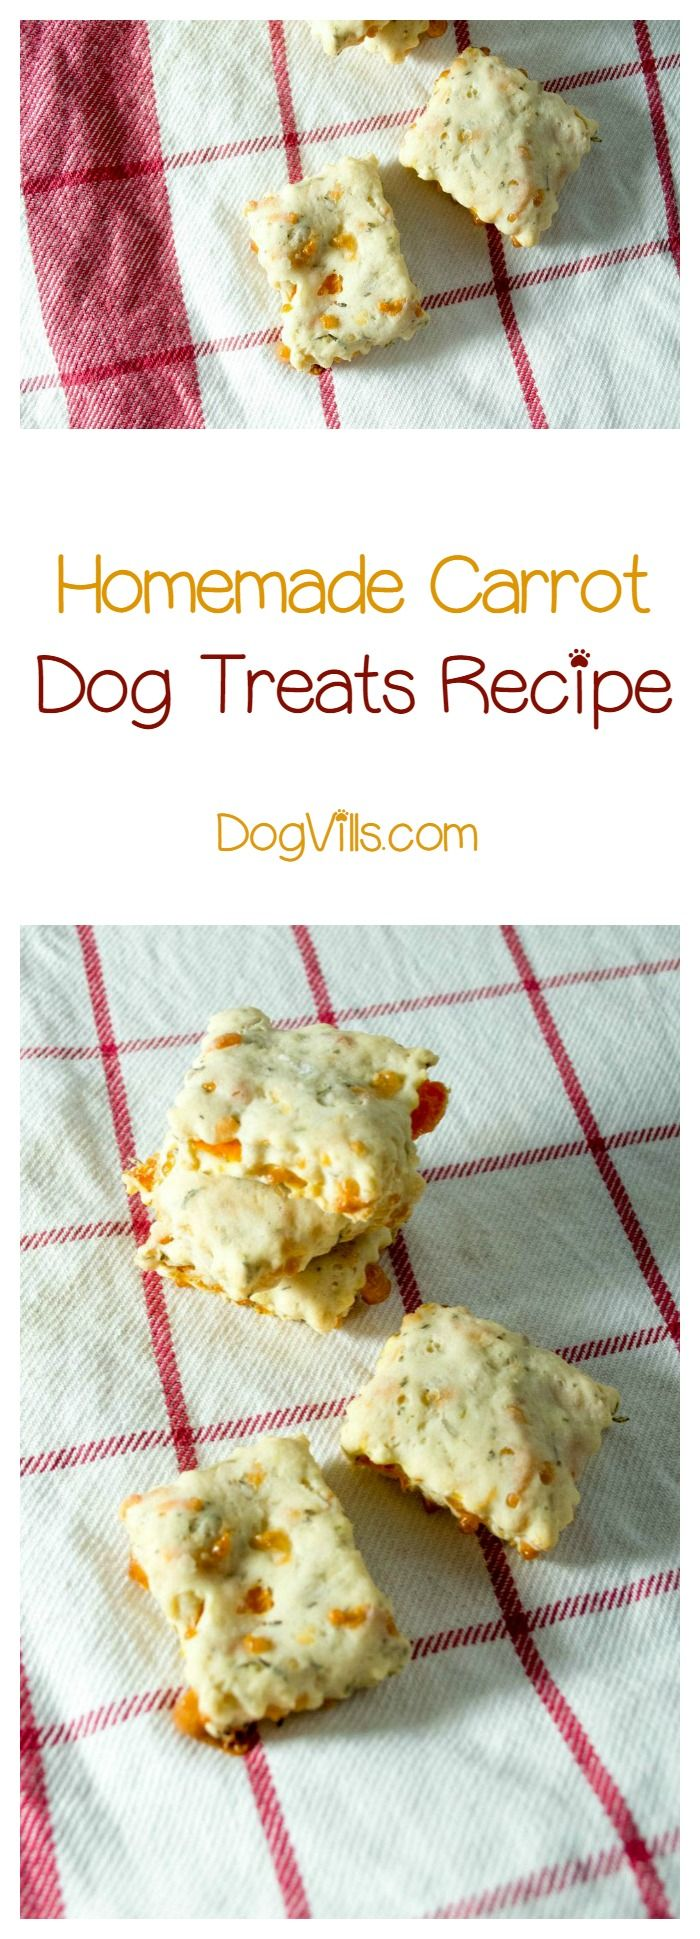 Want to give Fido a veggie treat he'll love? Check out these yummy homemade carrot dog treats! Grab the recipe!